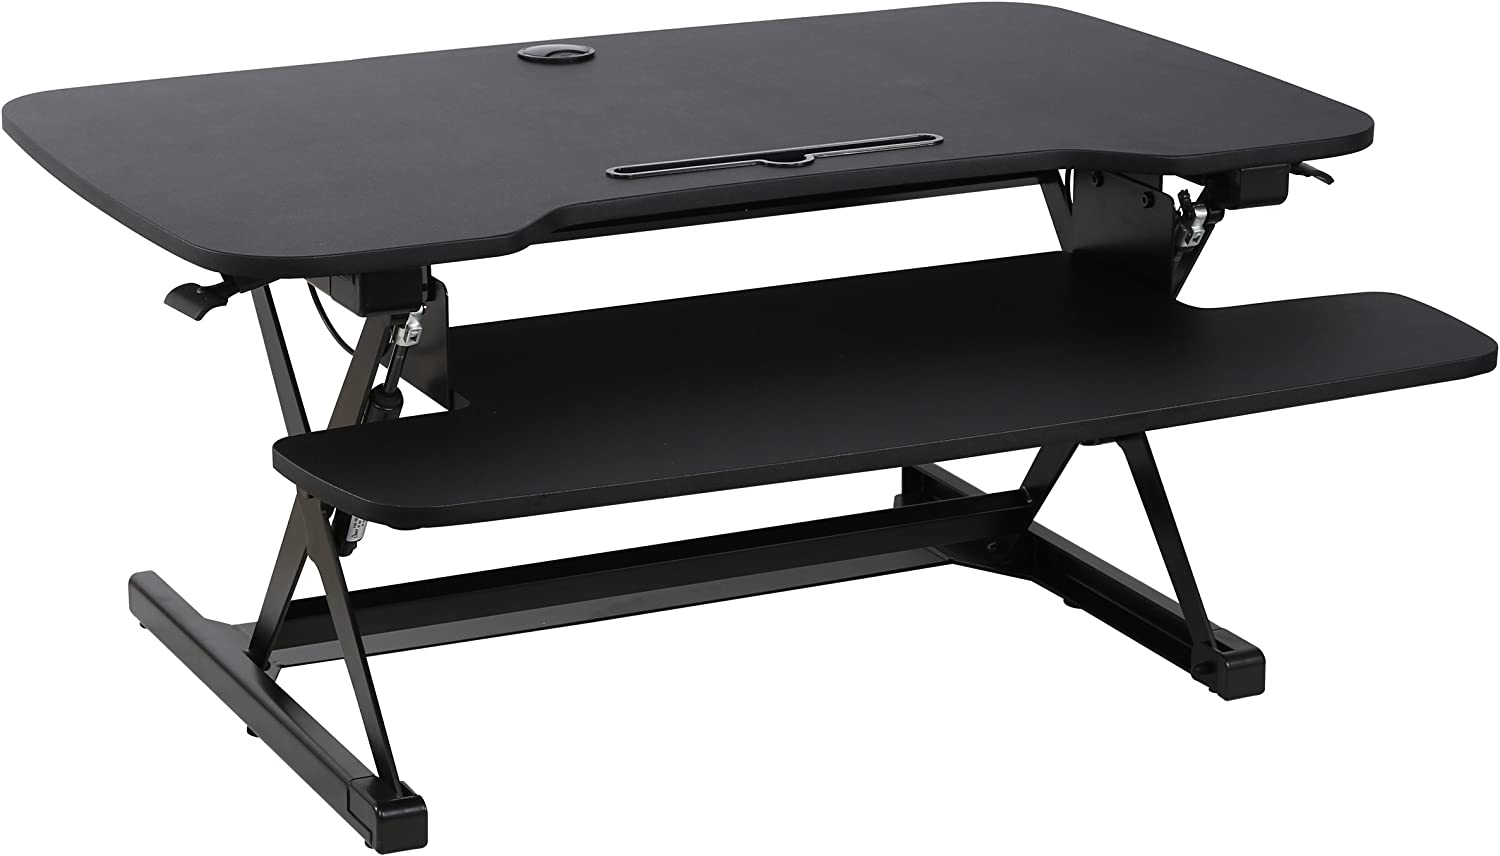 Poly and Bark Crafron Sit-to-Stand Desk Extra Wide 38.5 with Dual Monitor Capabilities and 17.5 Max Height in Black